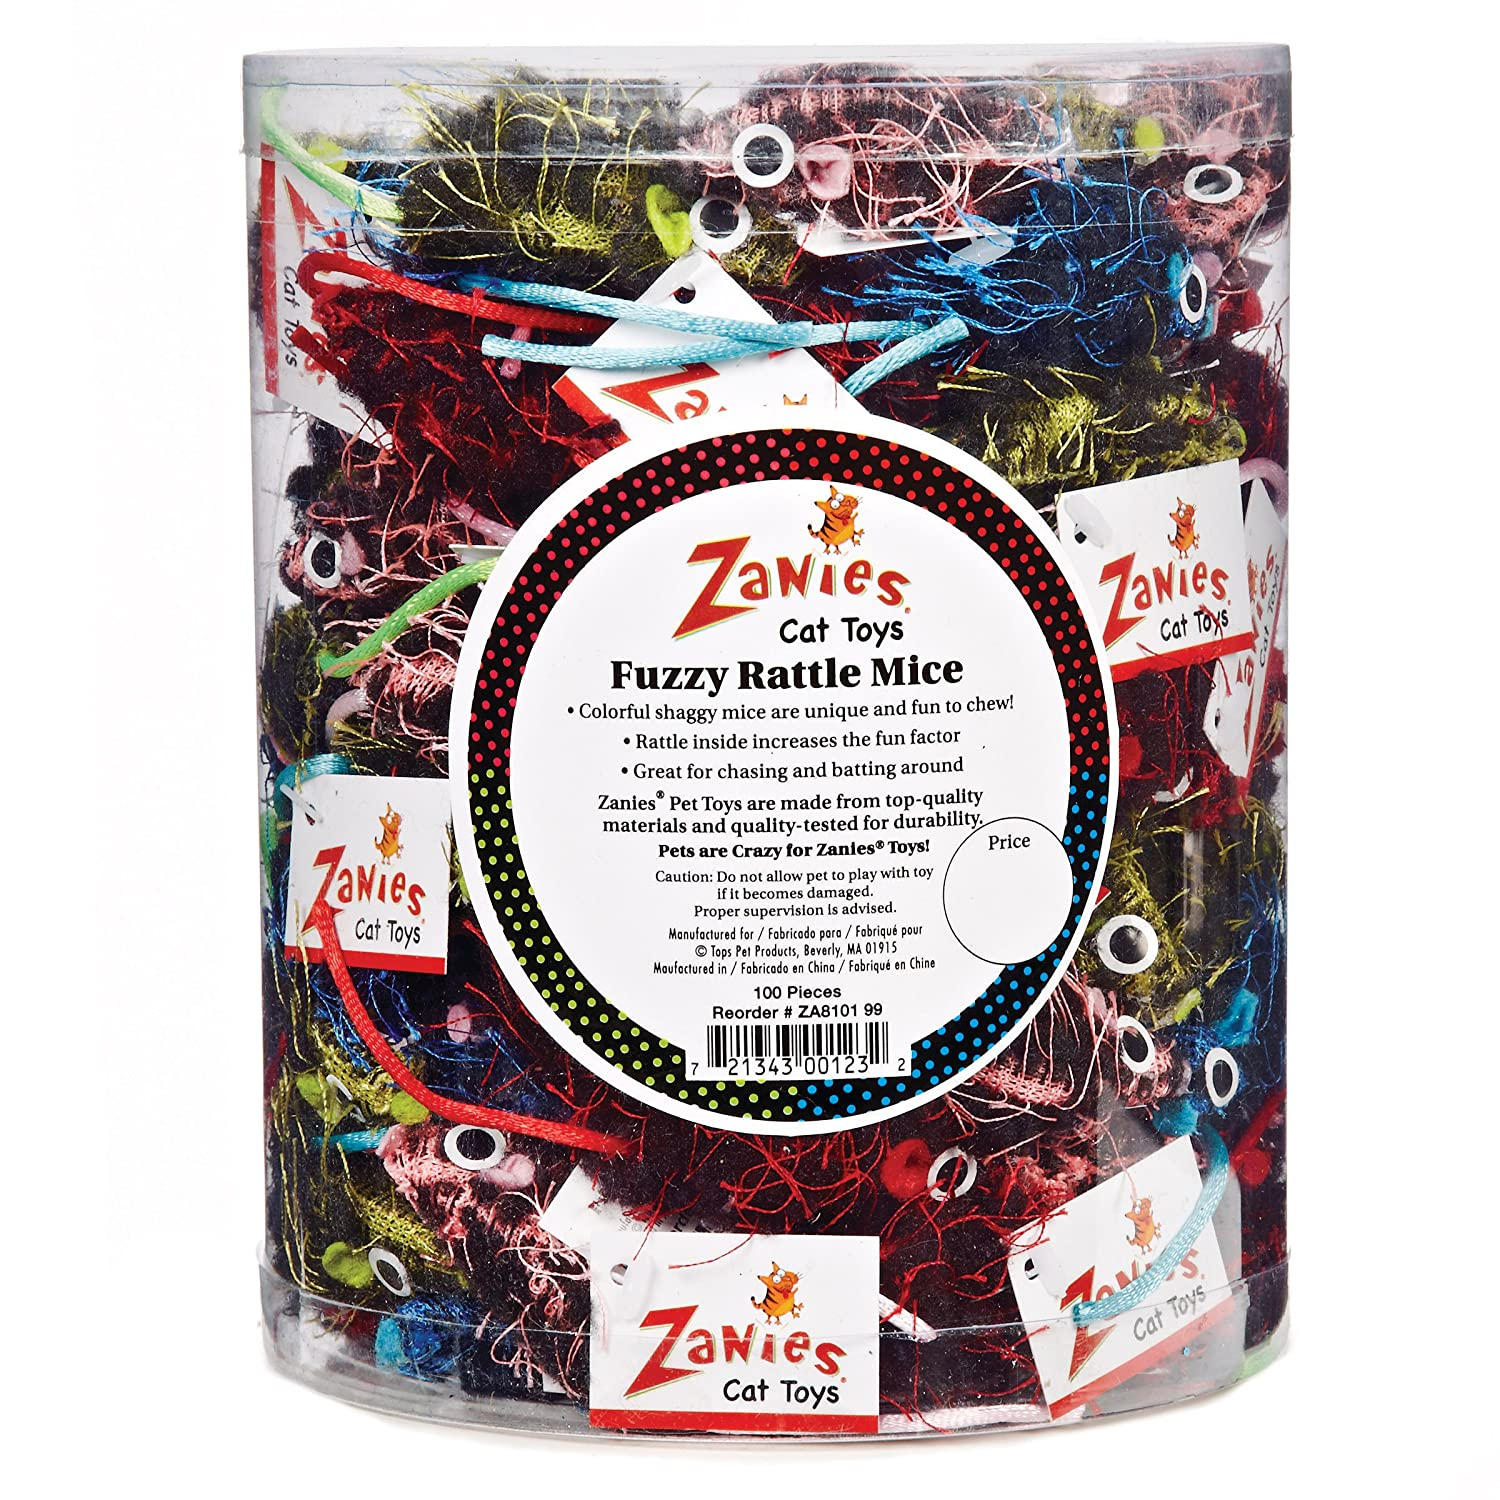 Zanies Fuzzy Rattle Mice Canister hot sale 2017